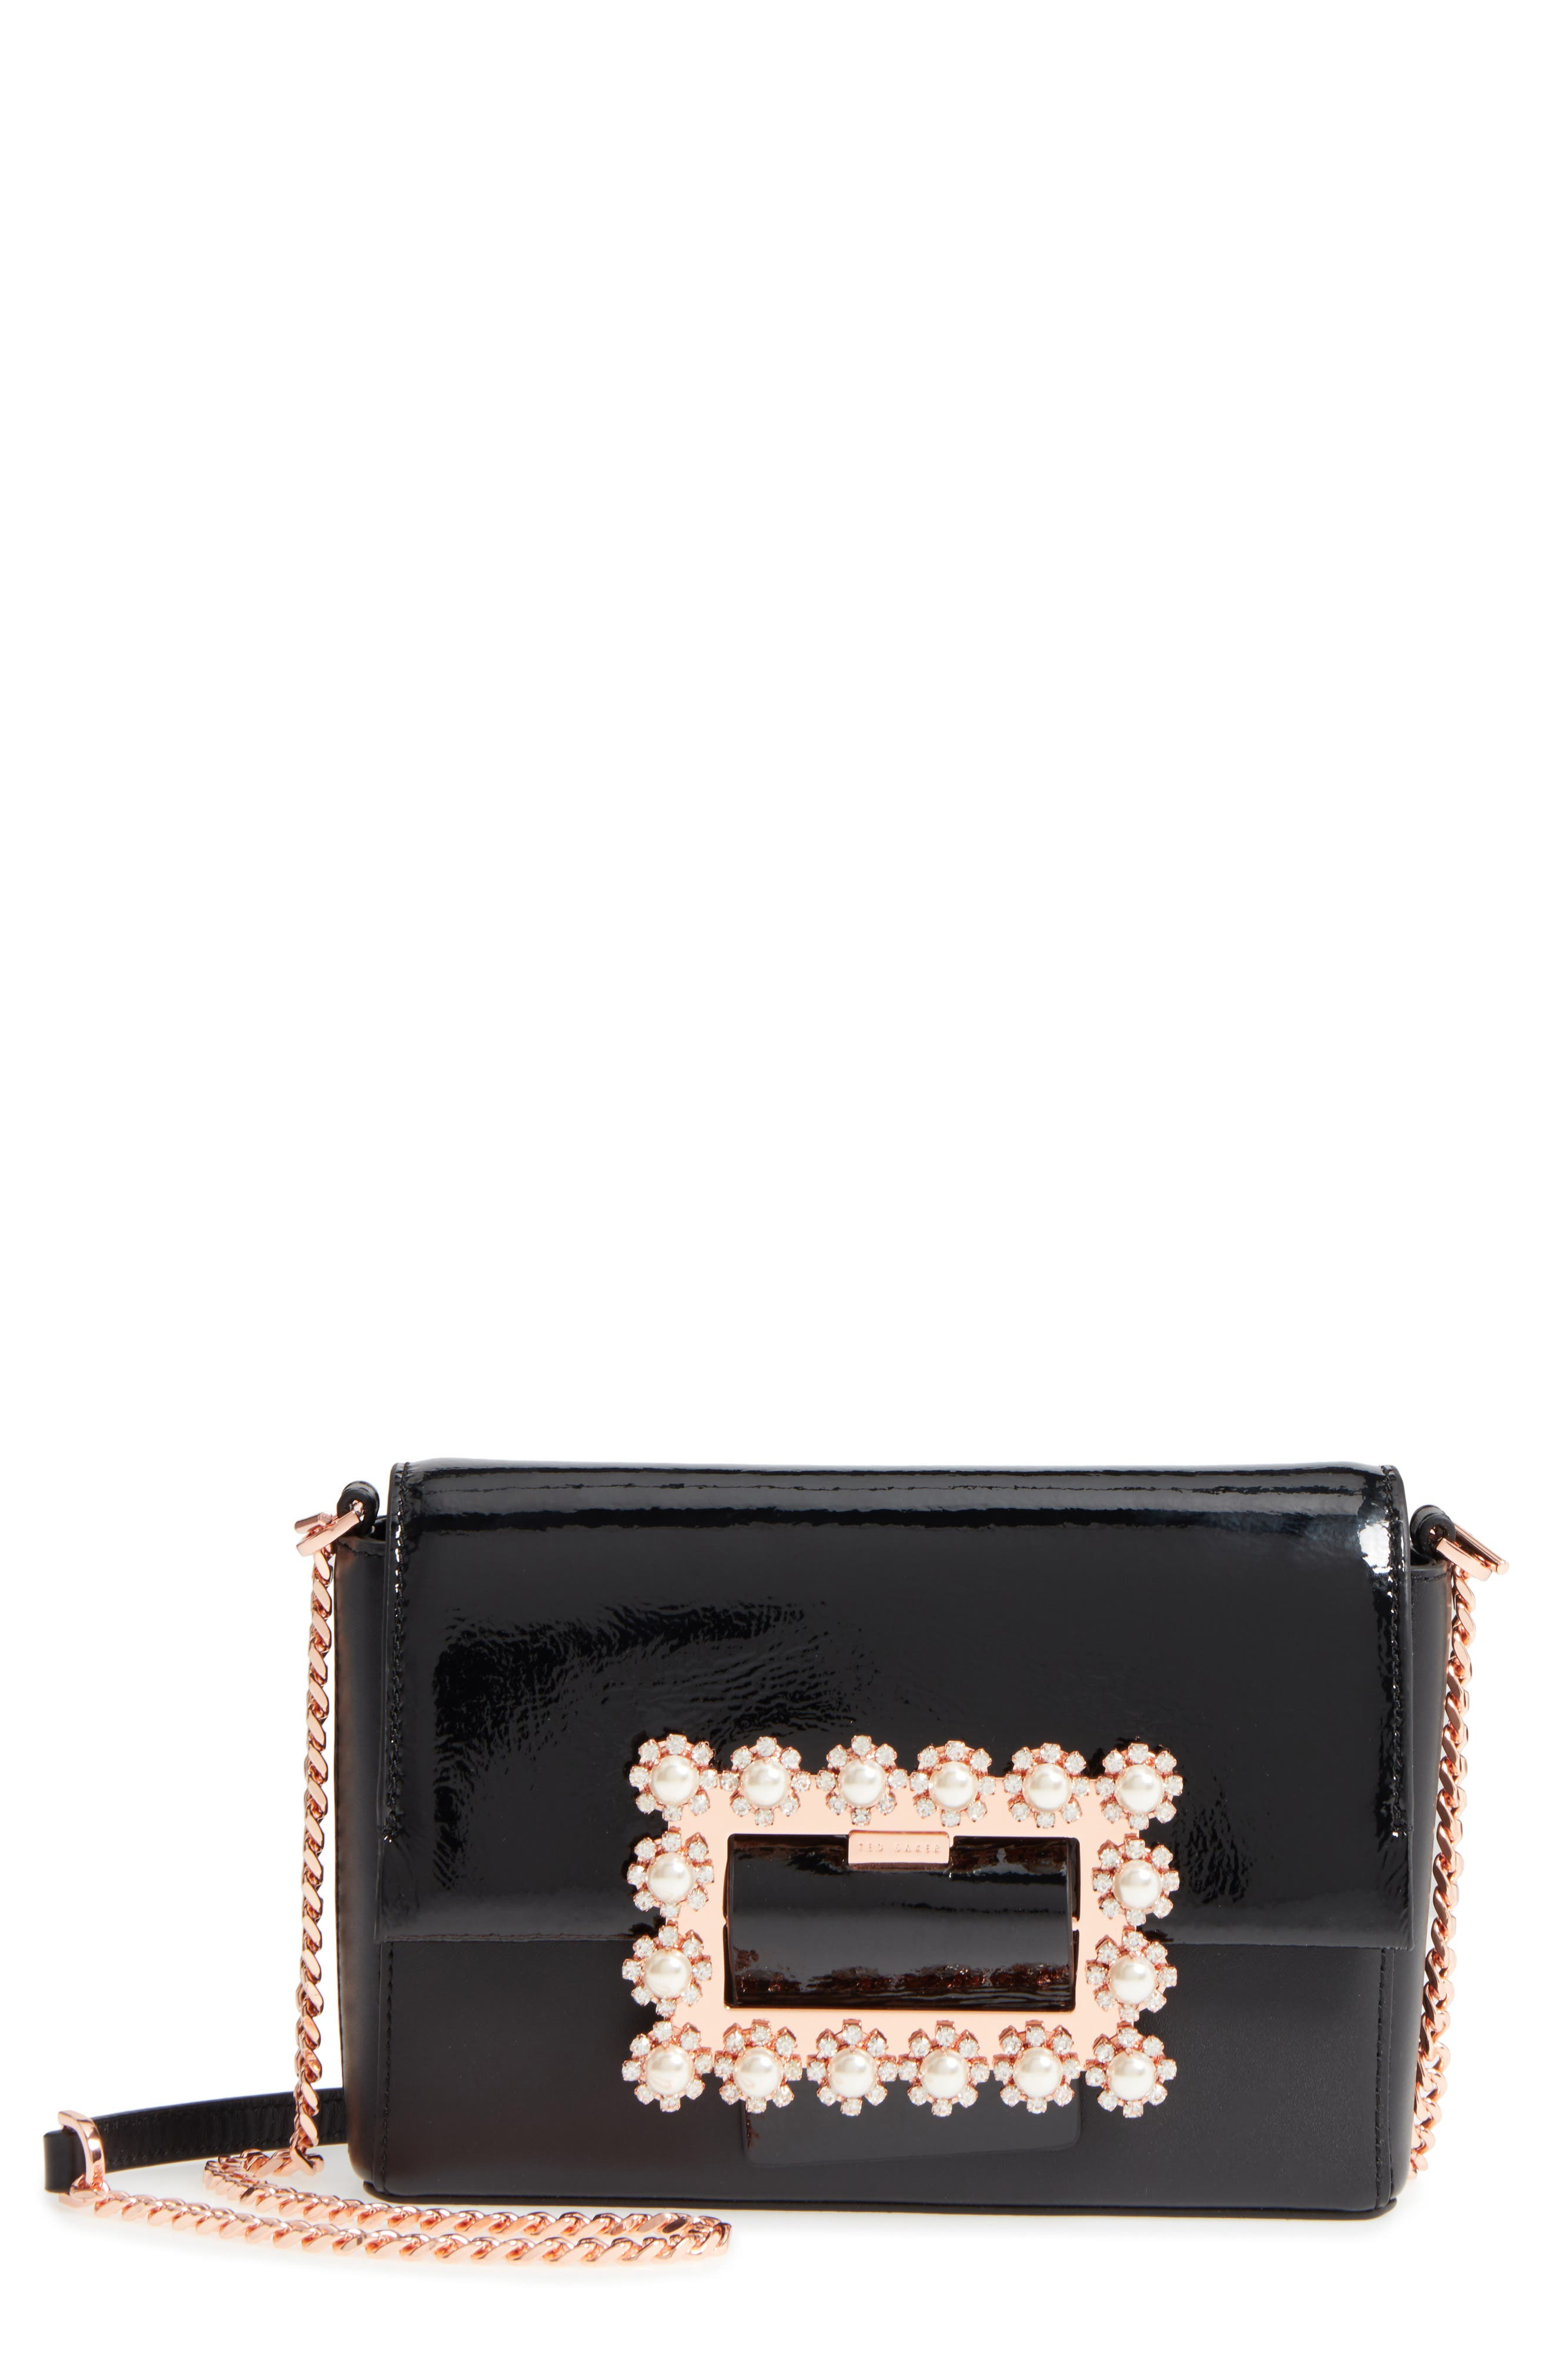 Peonyy Embellished Buckle Leather Clutch,                             Main thumbnail 1, color,                             Black